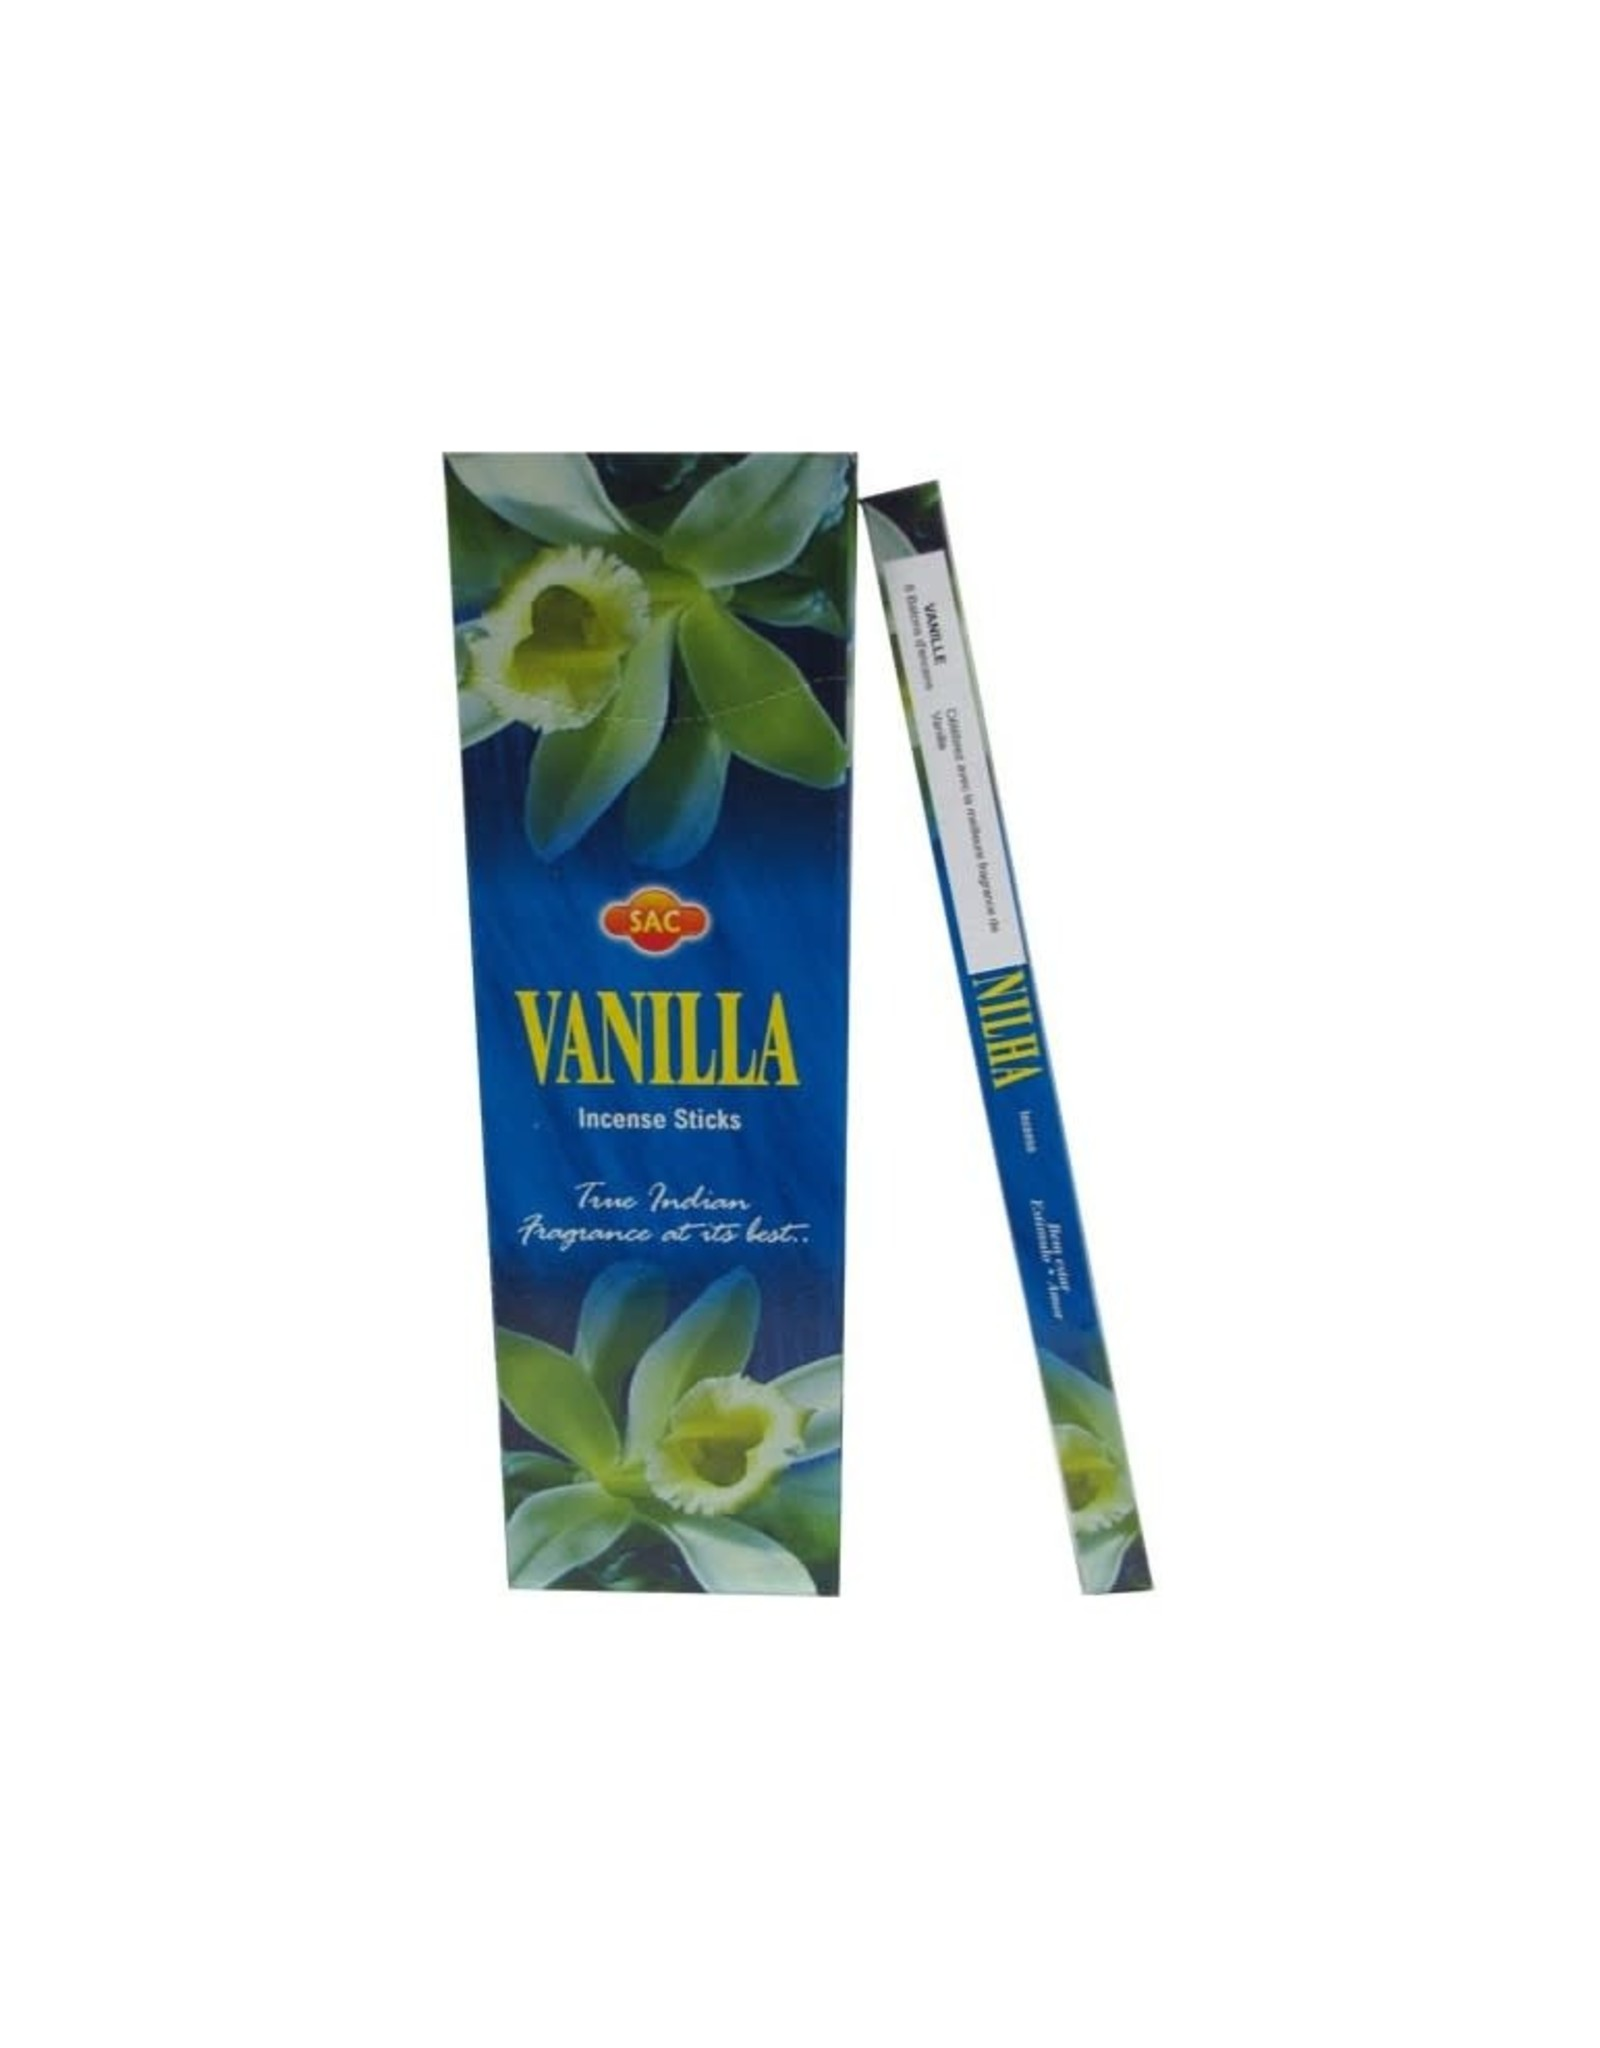 Vanilla Incense Sticks SAC